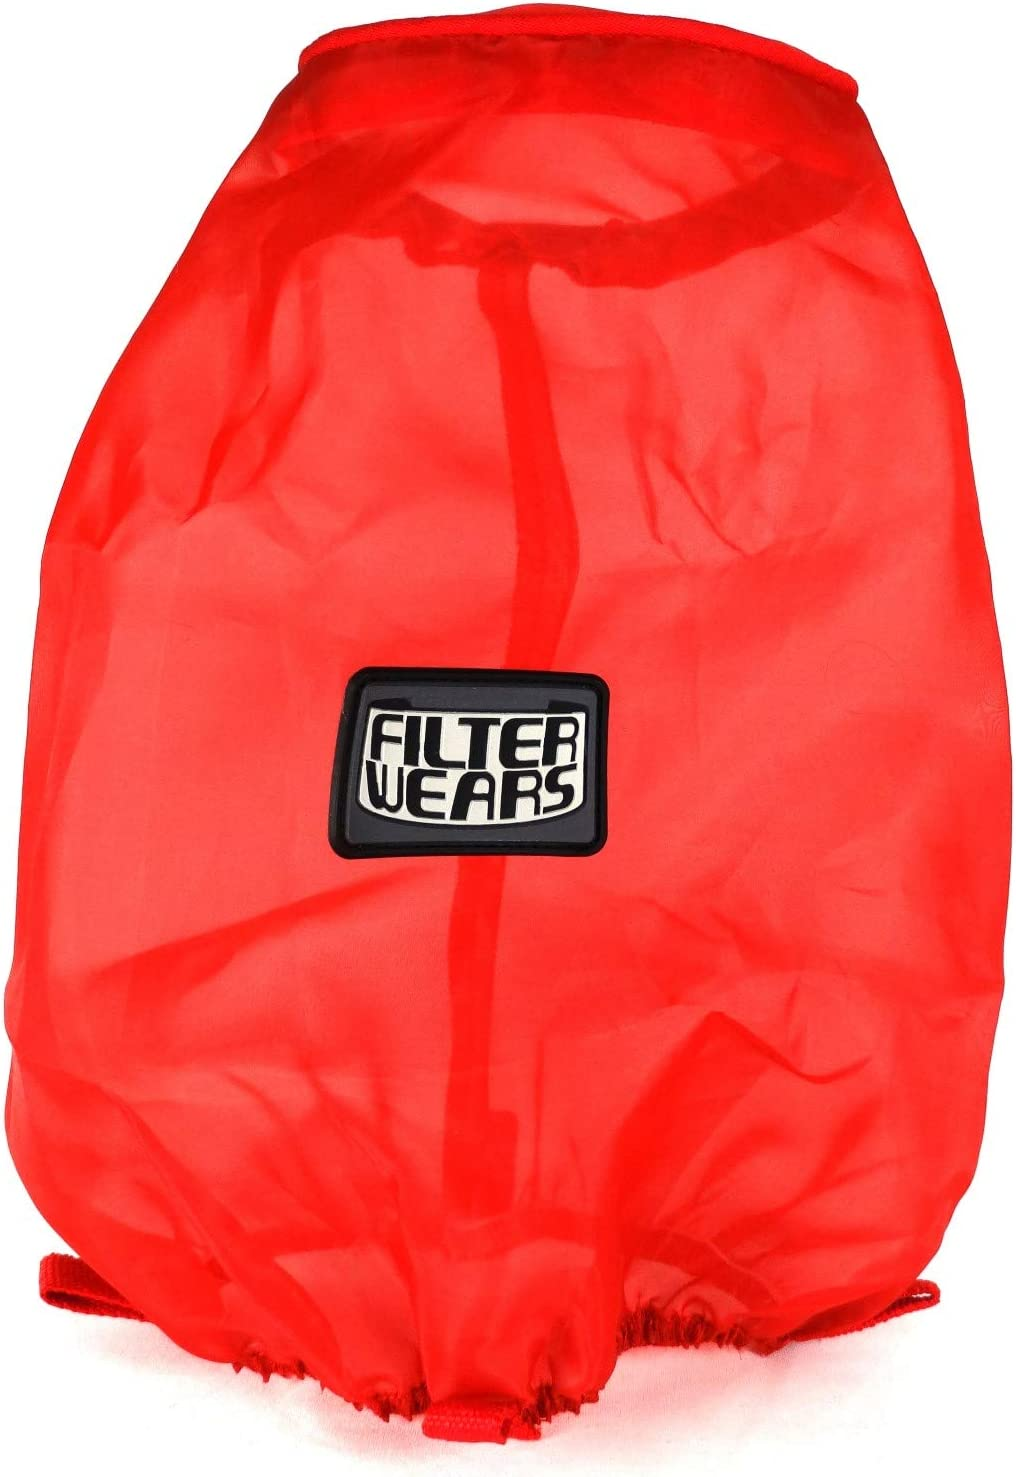 FILTERWEARS Pre-Filter F117R For SPECTRE Air Filters 9732 9736